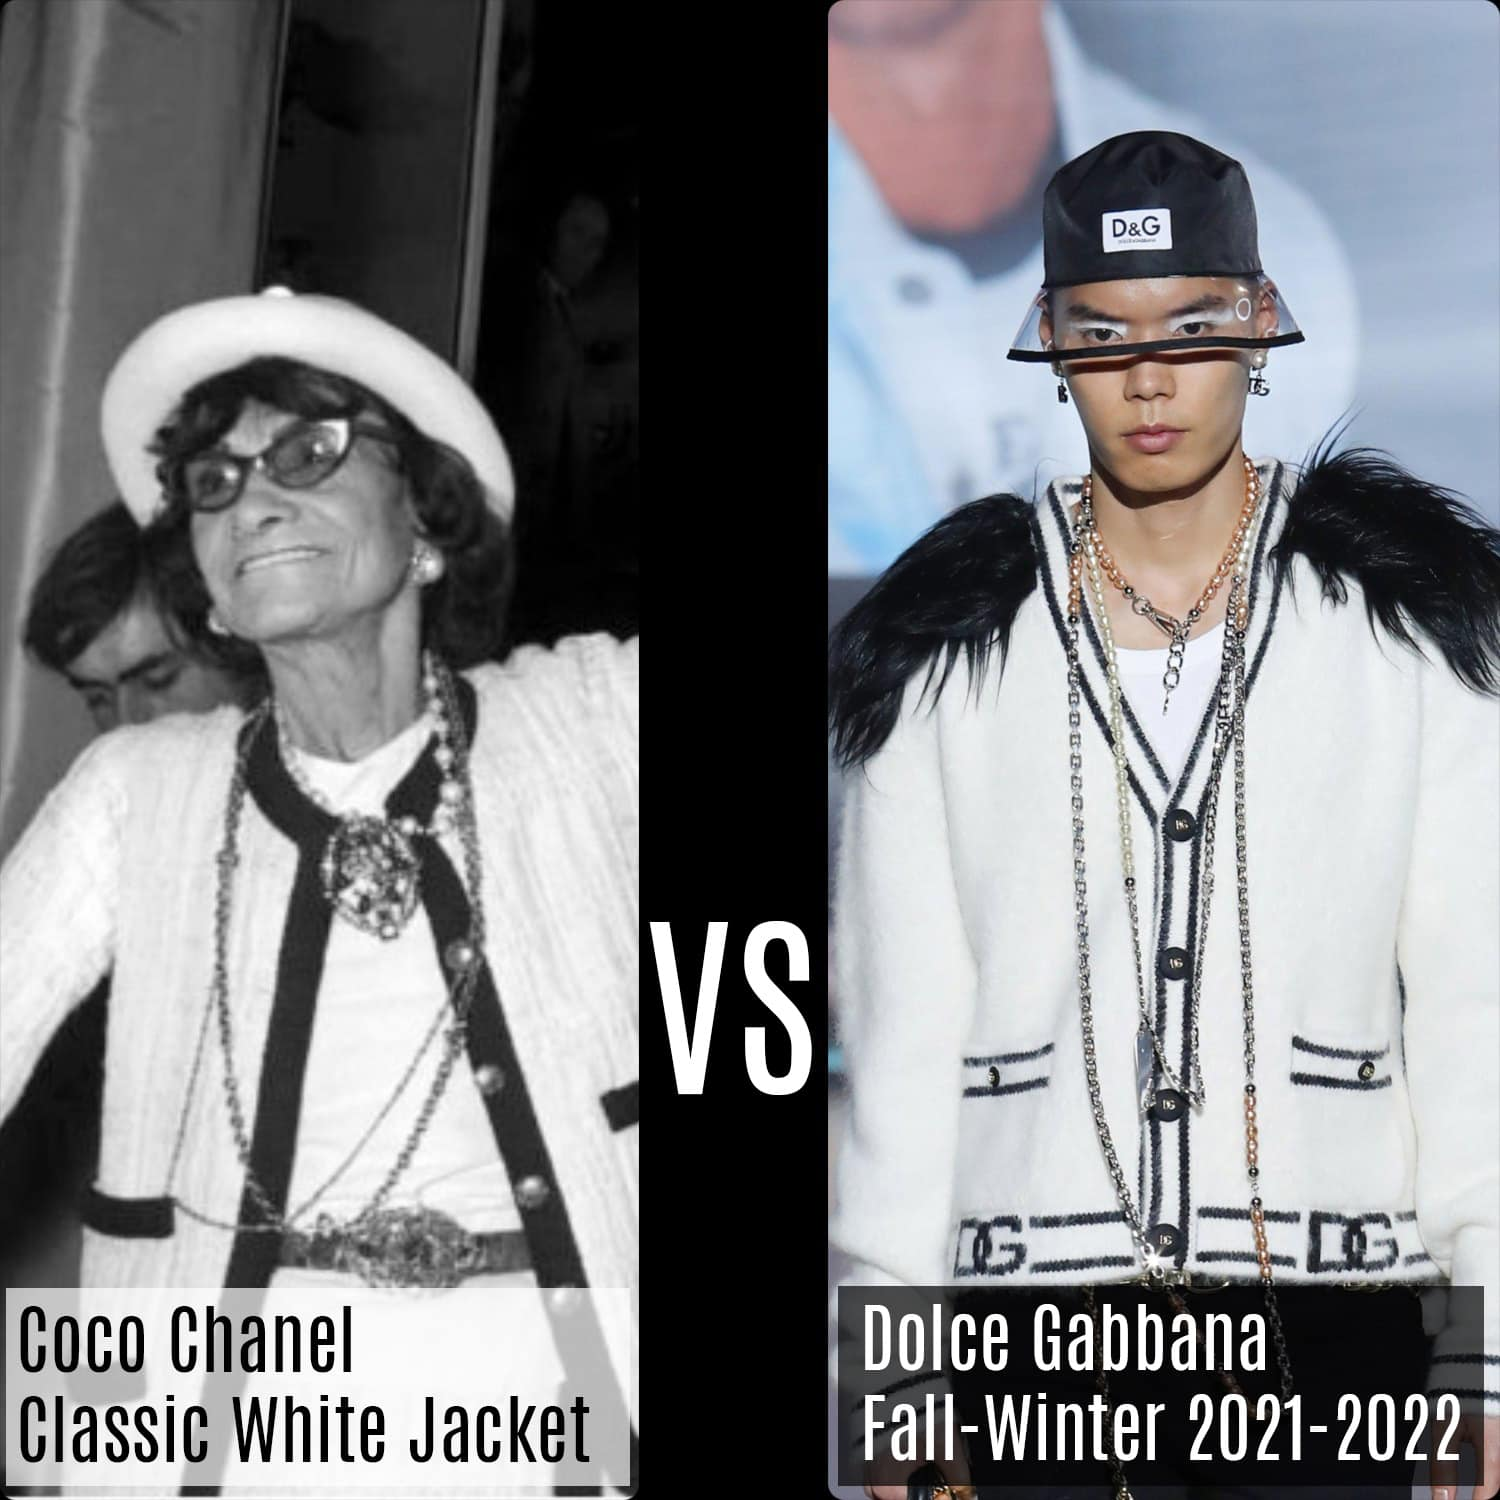 Chanel Classic White Jacket VS Dolce Gabbana Fall-Winter 2021-2022